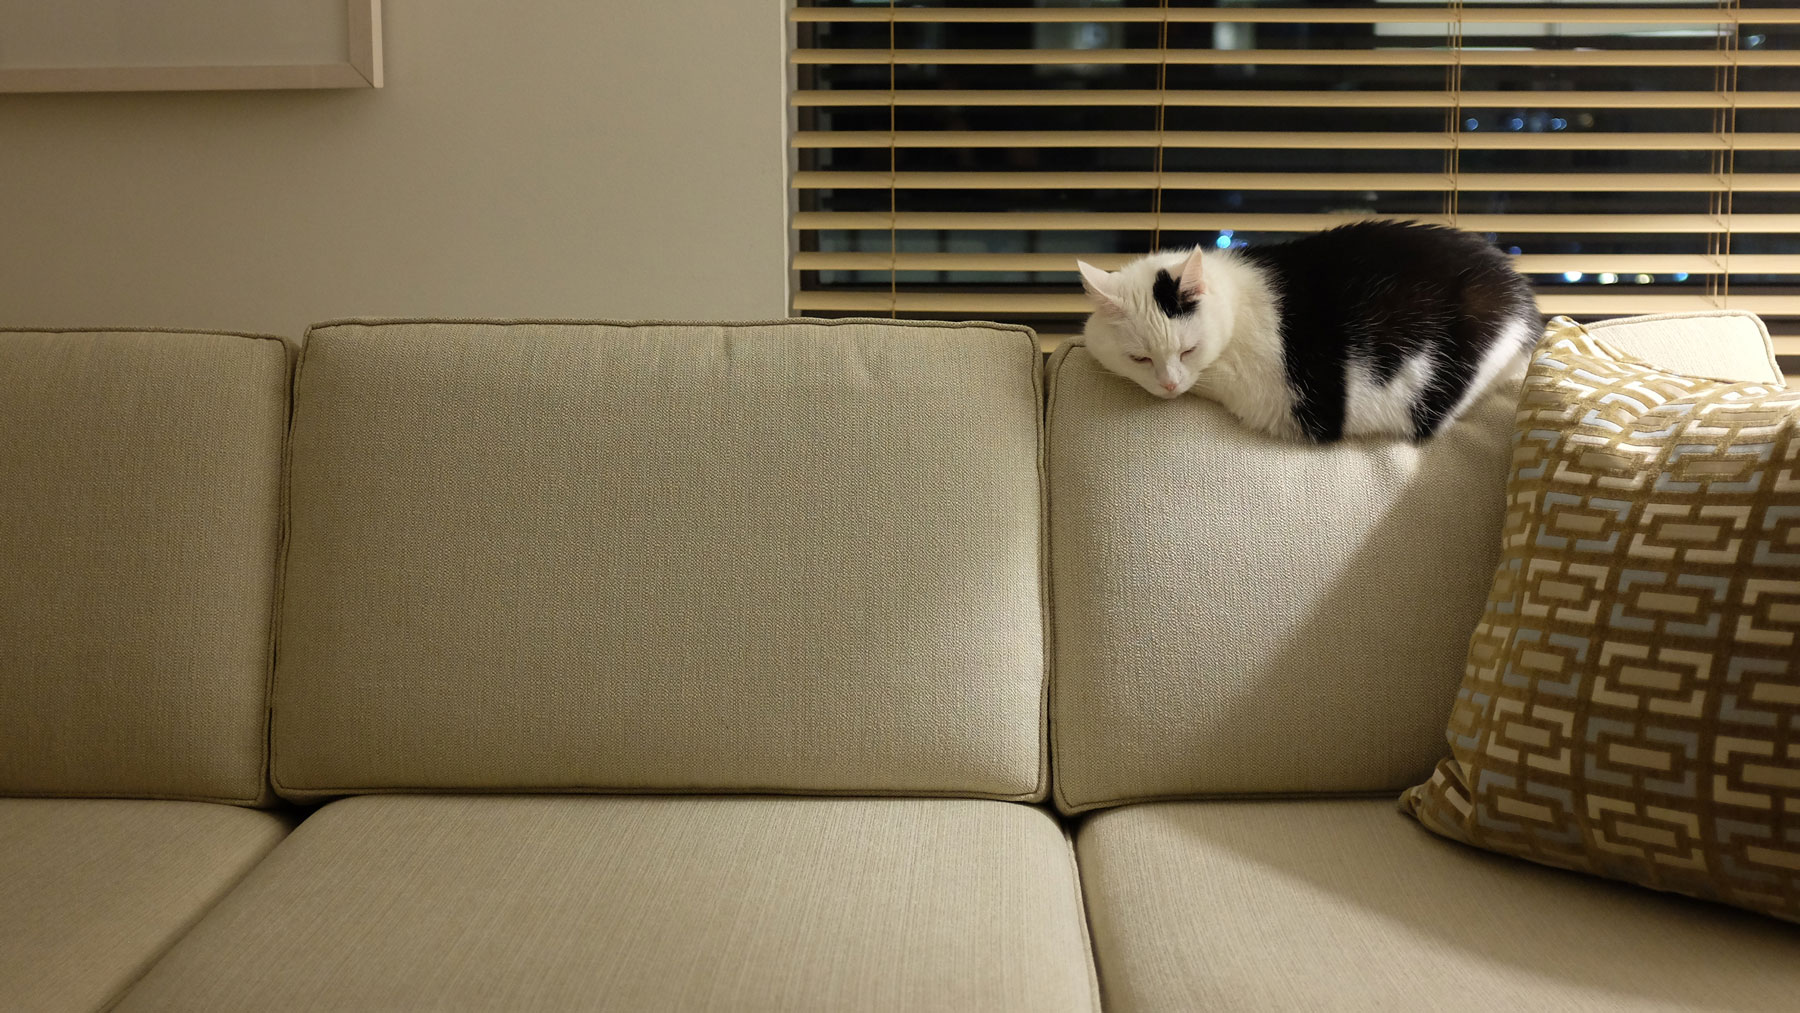 cat-hotel-sofa-FT-BLOG0517.jpg